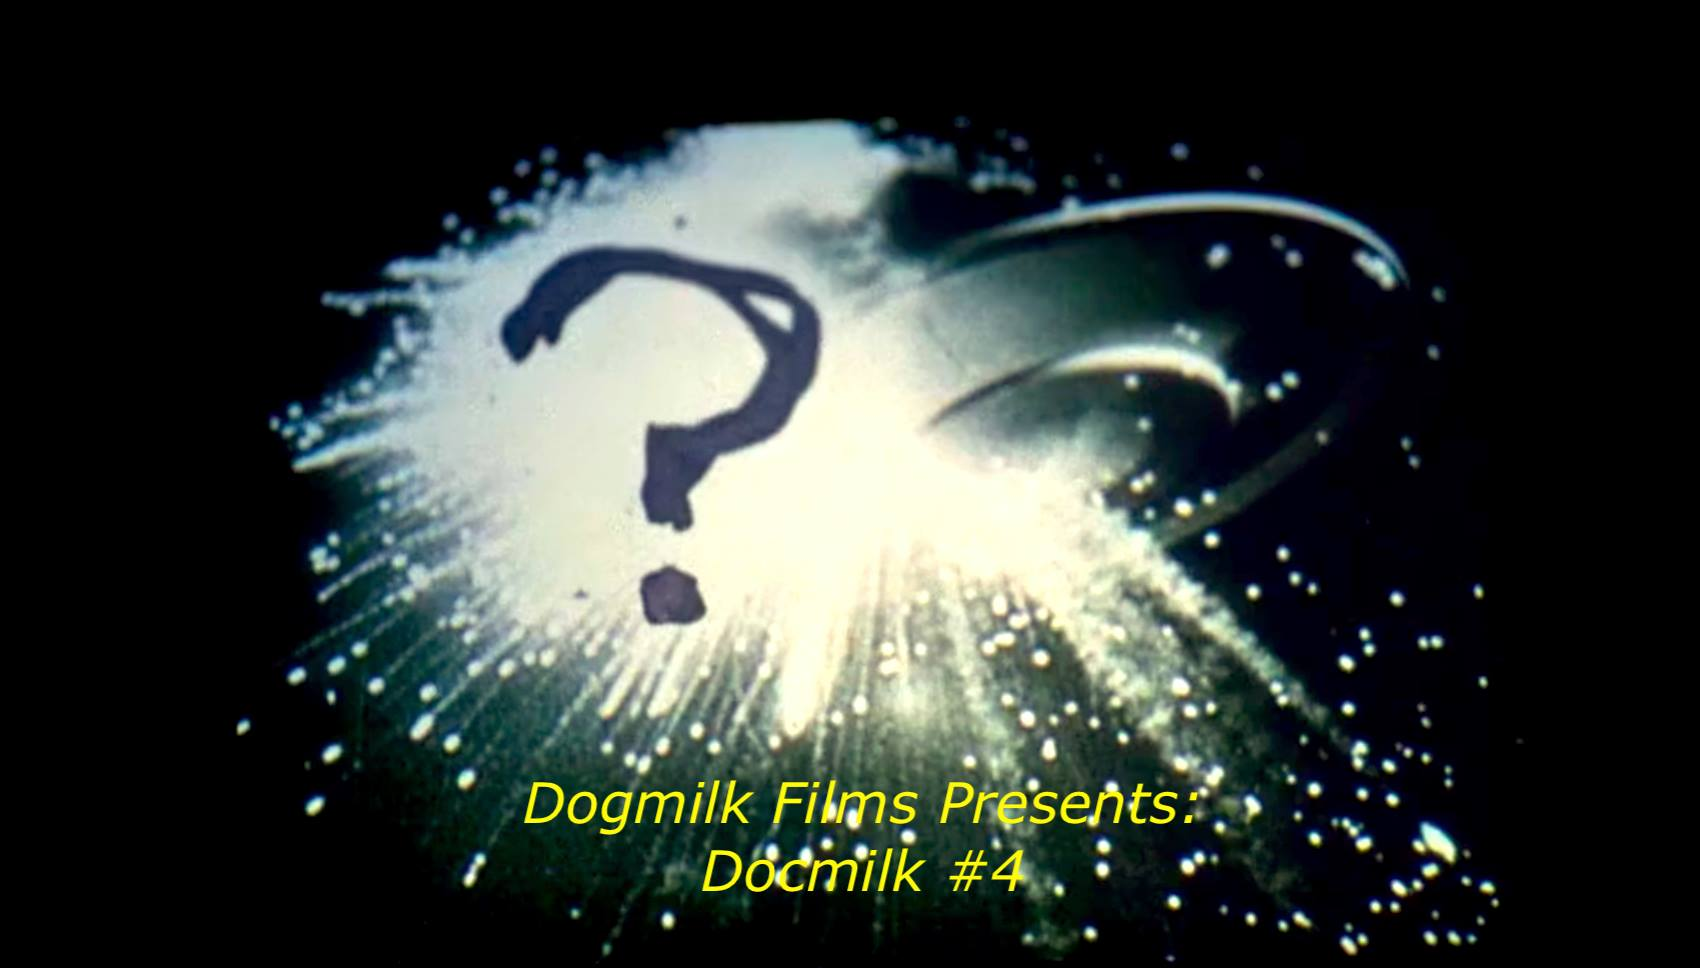 Dogmilk presents Docmilk #4: F for Fake - New Location!